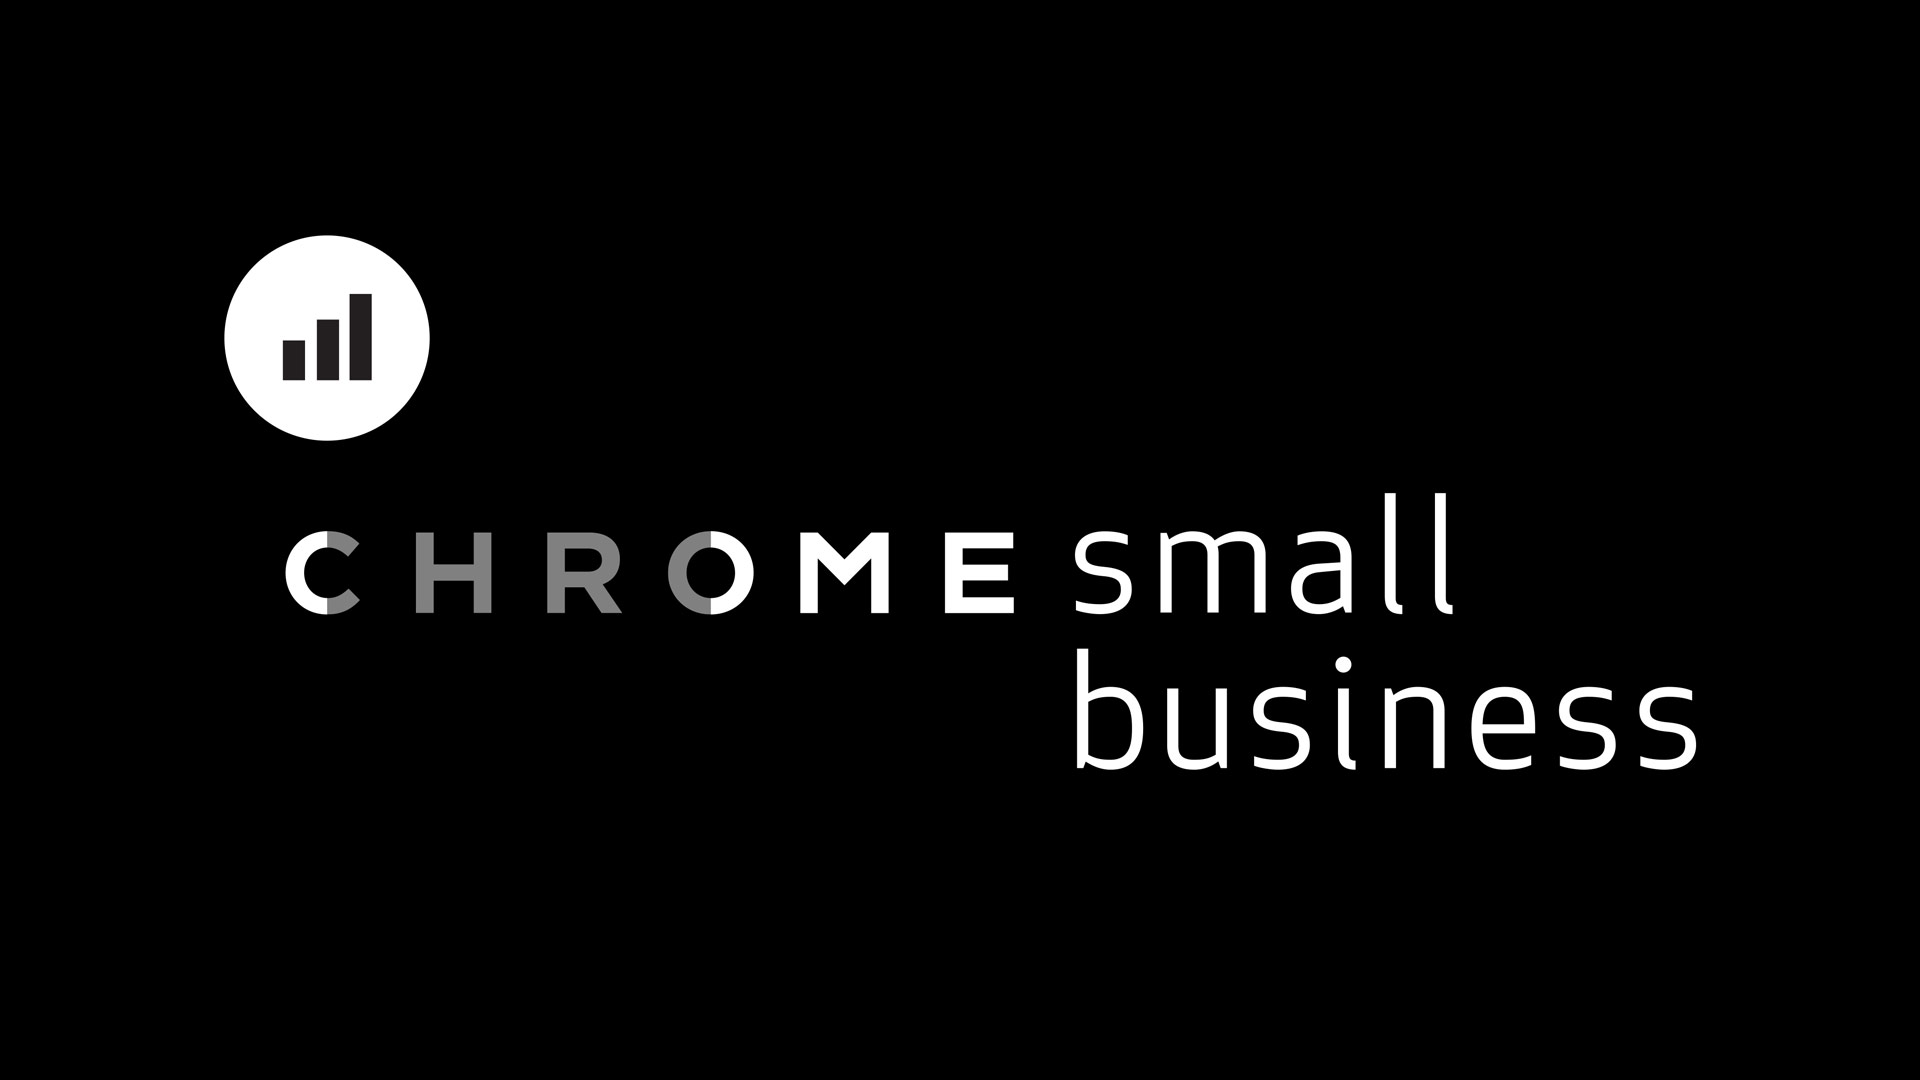 Chrome 21 smallbusiness